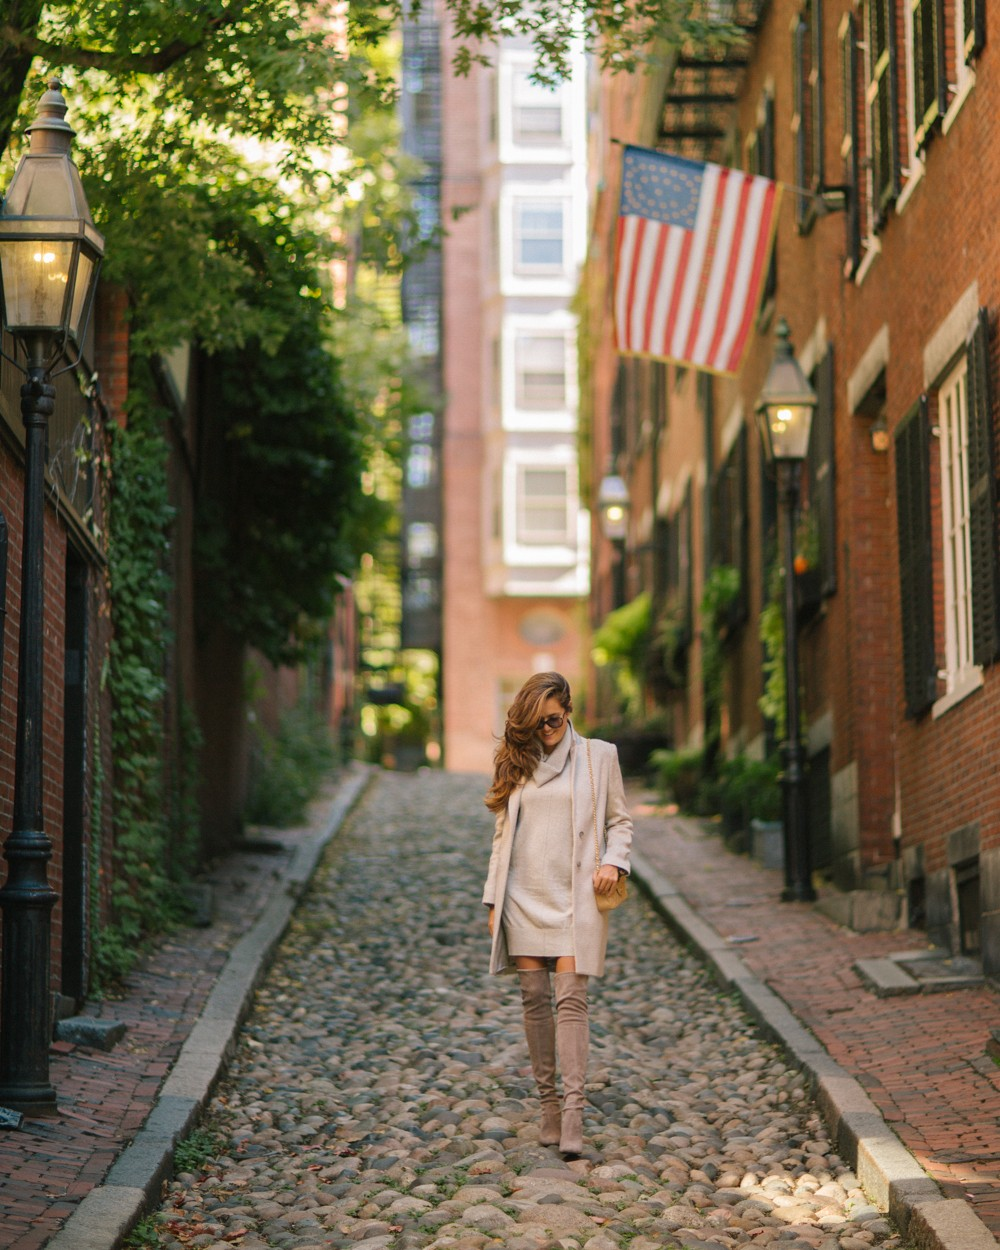 One of the oldest streets in America - Acorn Street, Boston